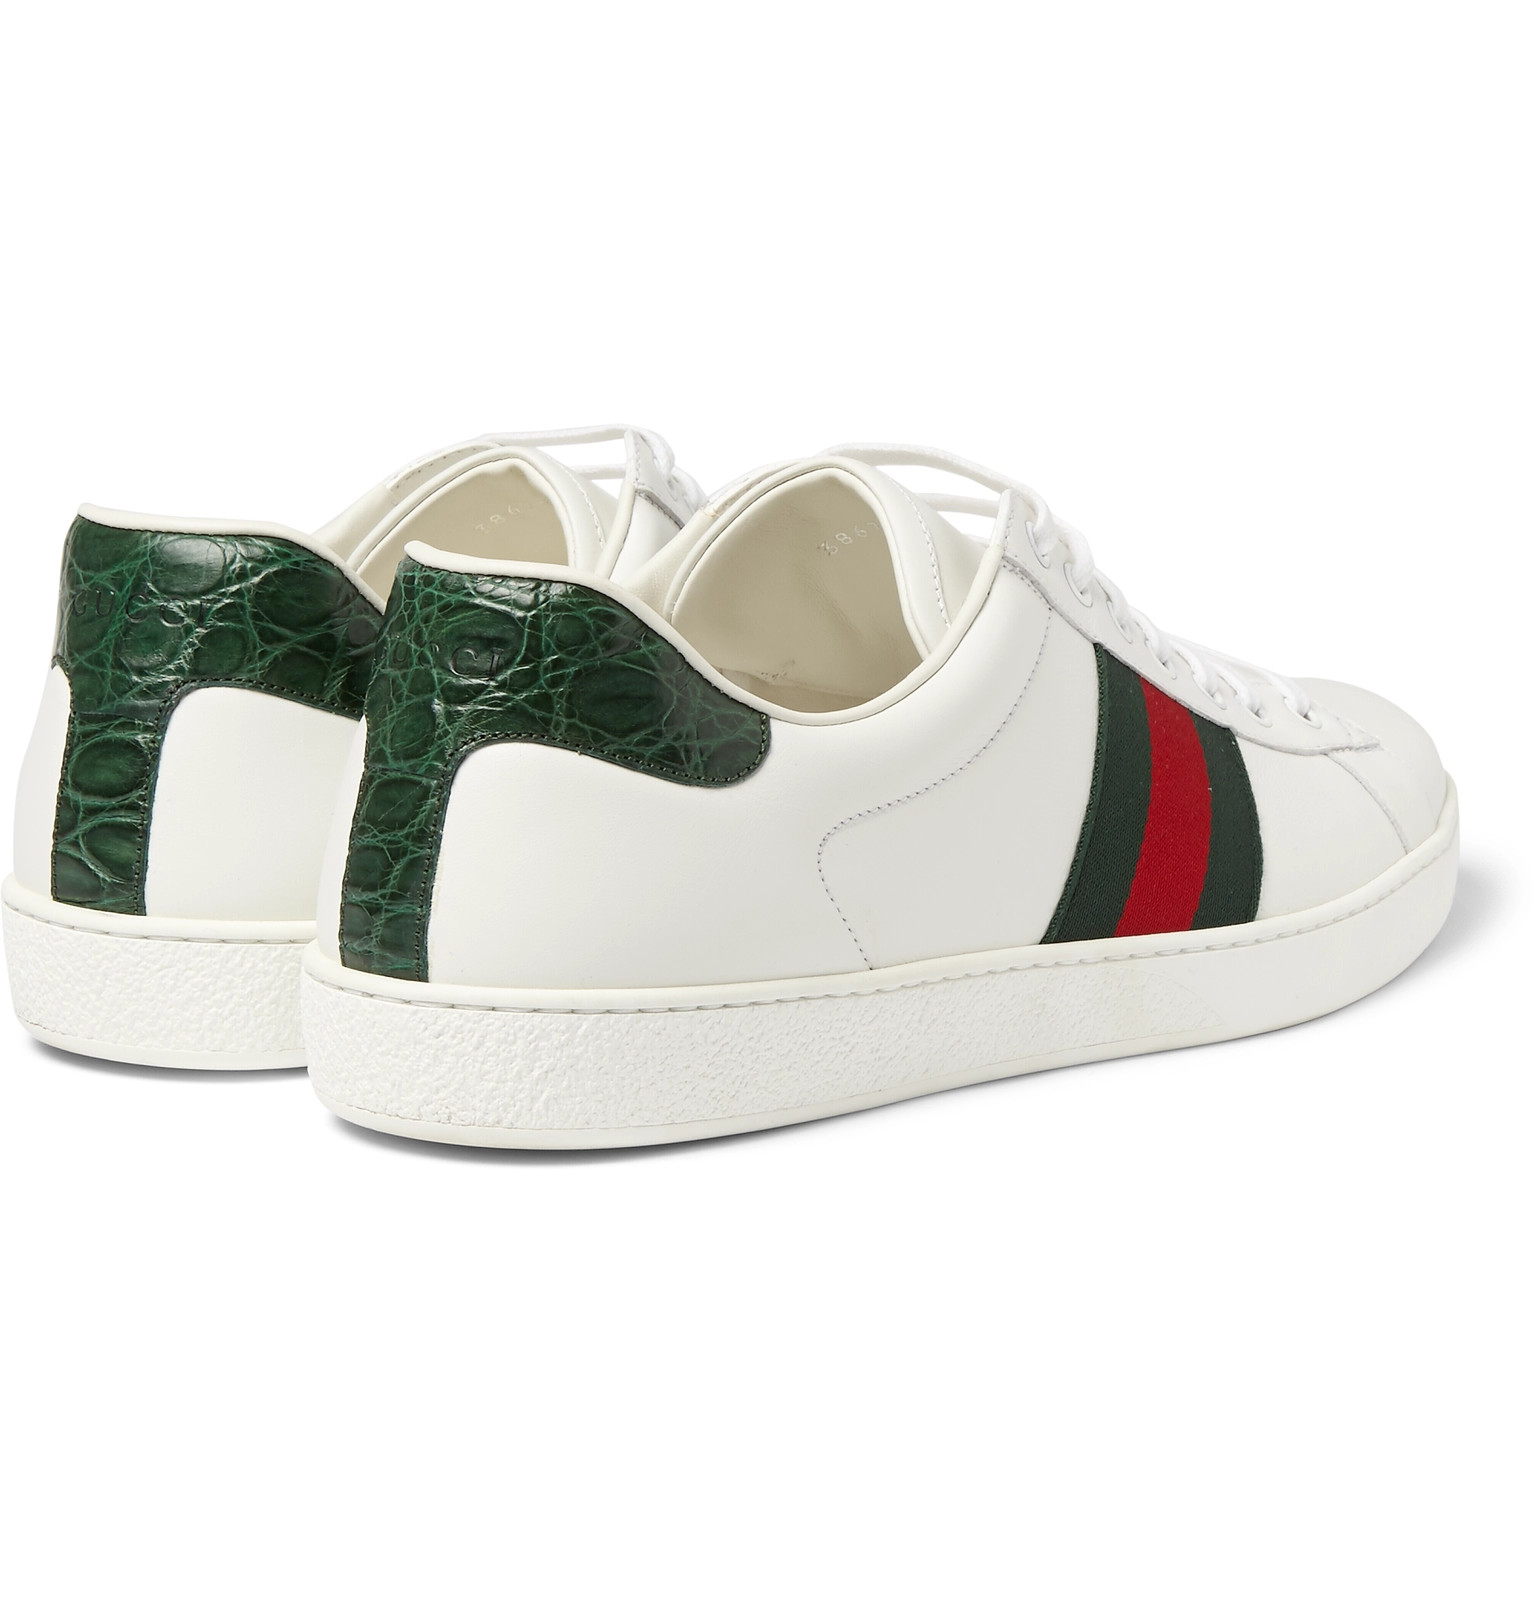 7a3642114 Gucci - Ace Crocodile-Trimmed Leather Sneakers